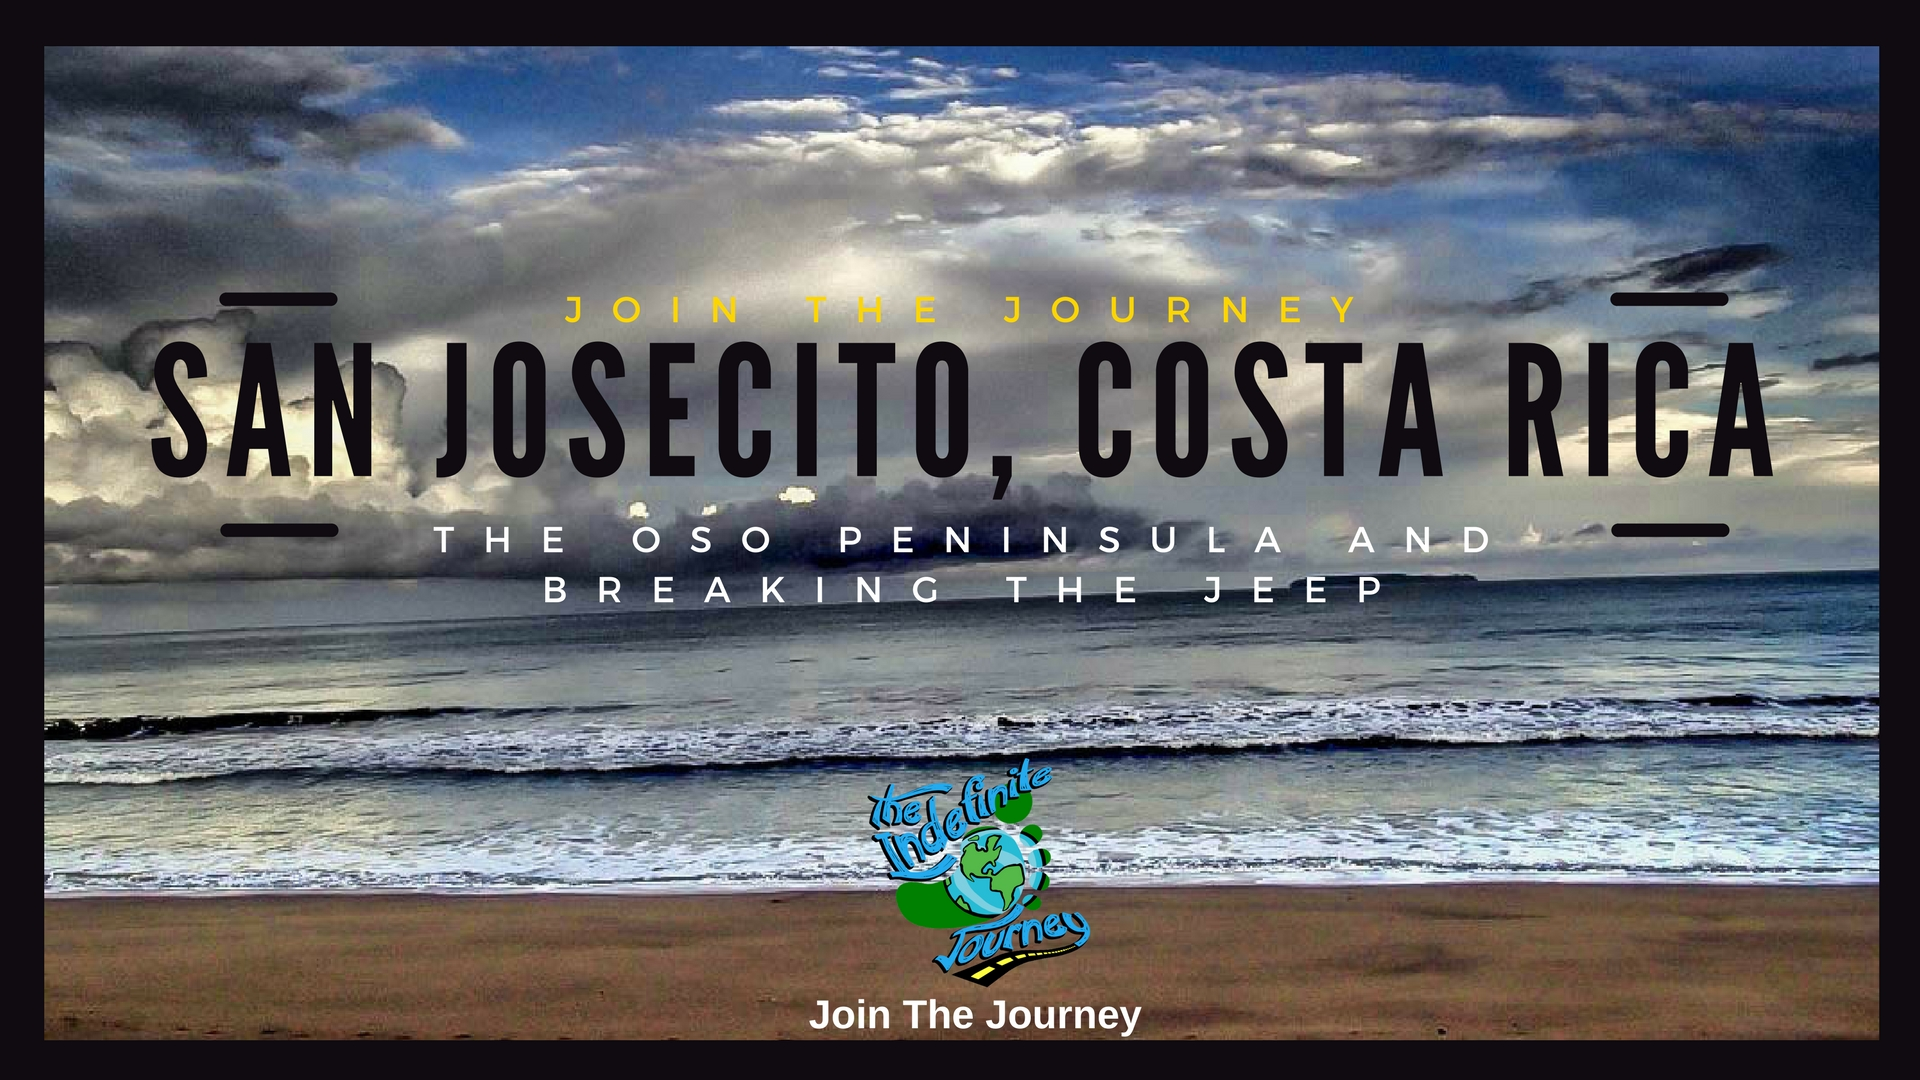 San Josecito, Costa Rica In The Oso Peninsula And Breaking The Jeep